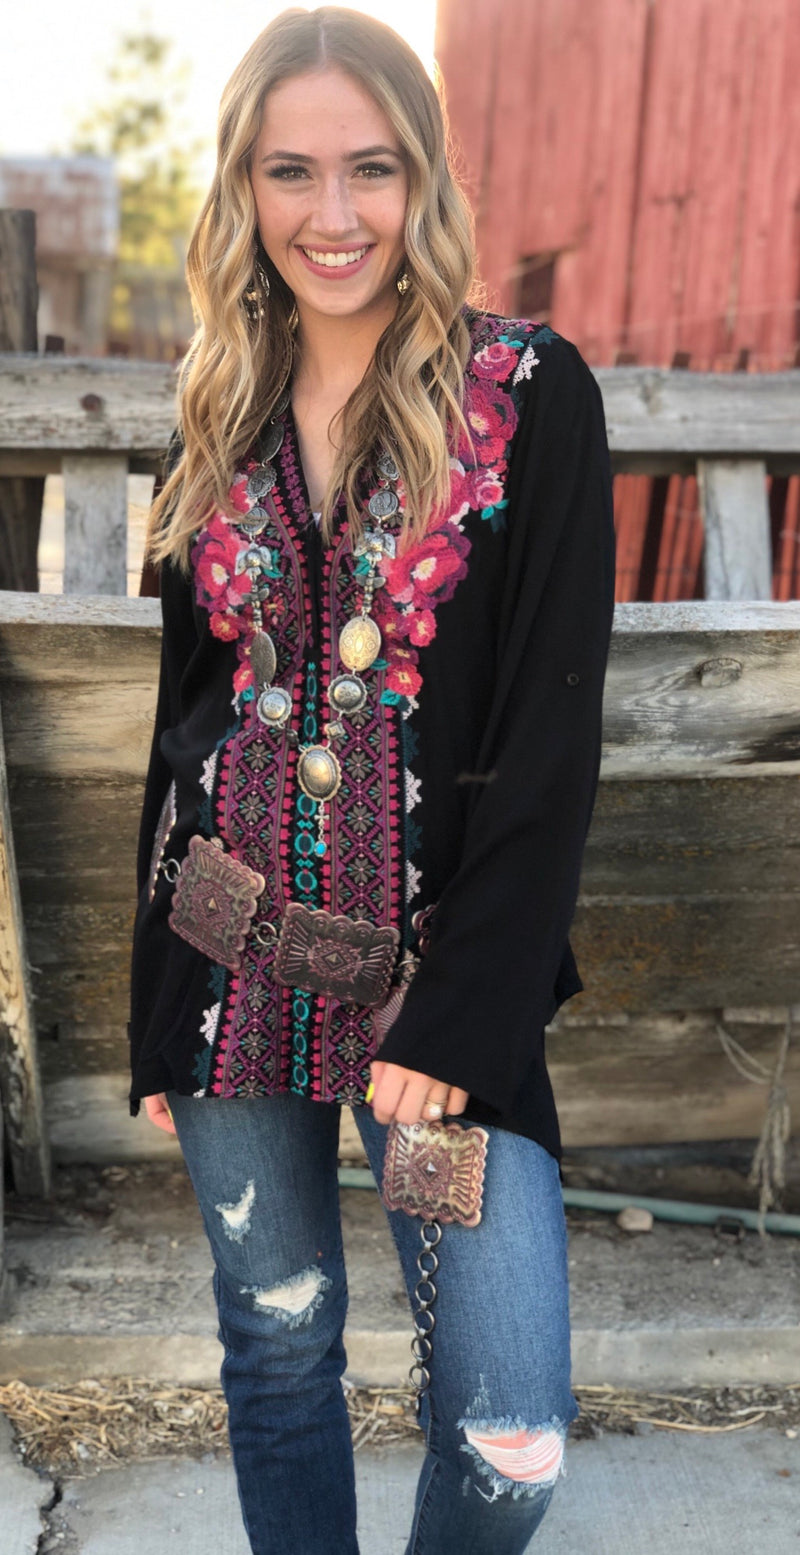 The Black Ellensburg Embroidered Top